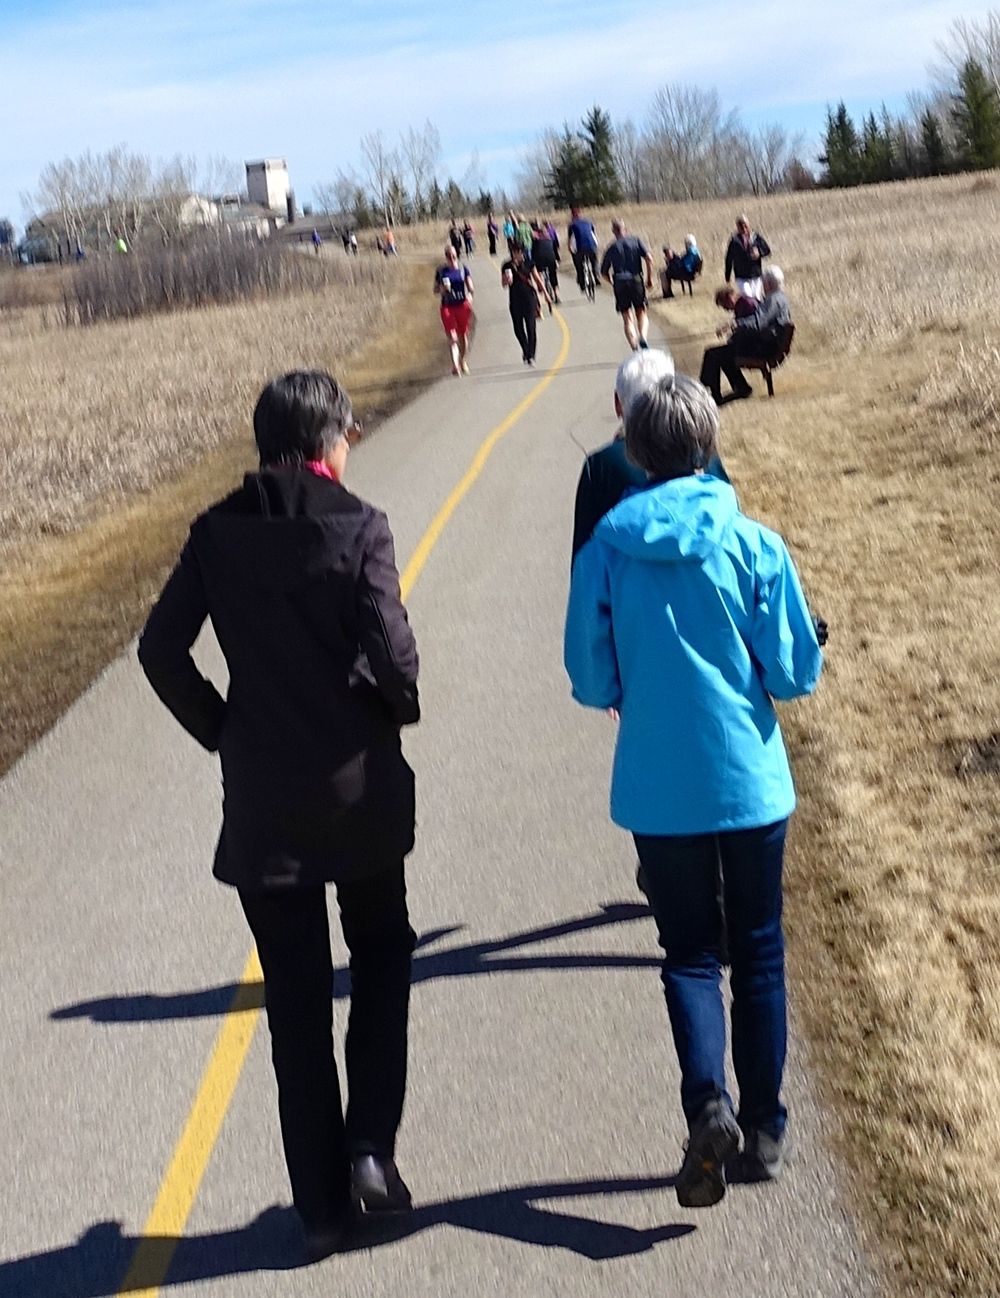 Glenmore Reservoir pathway was a busy place on March 29, 2015.